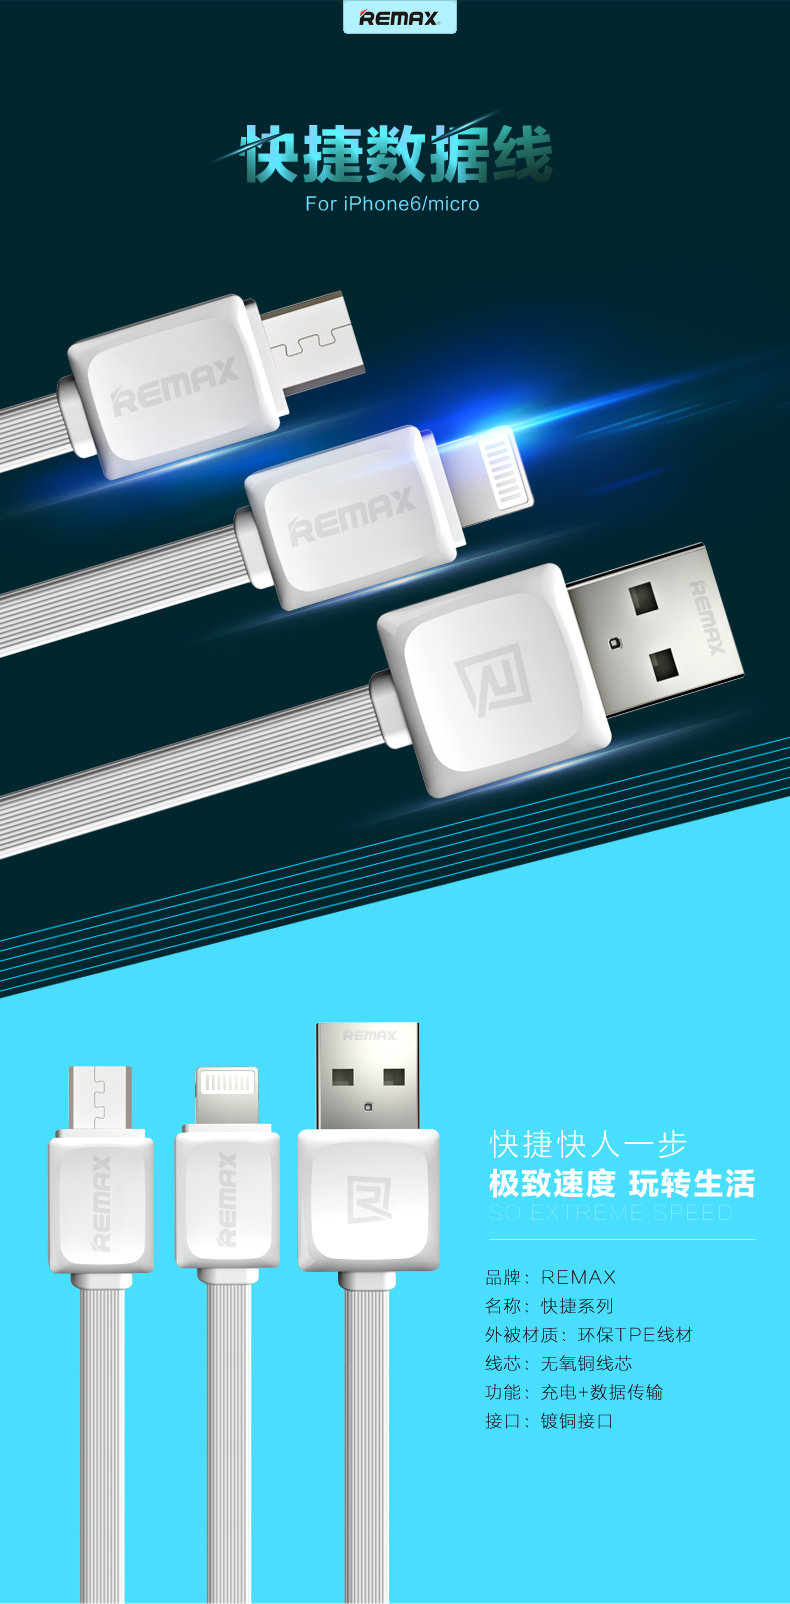 USB кабель REMAX Fast Data (micro USB) фото 1 — eCase